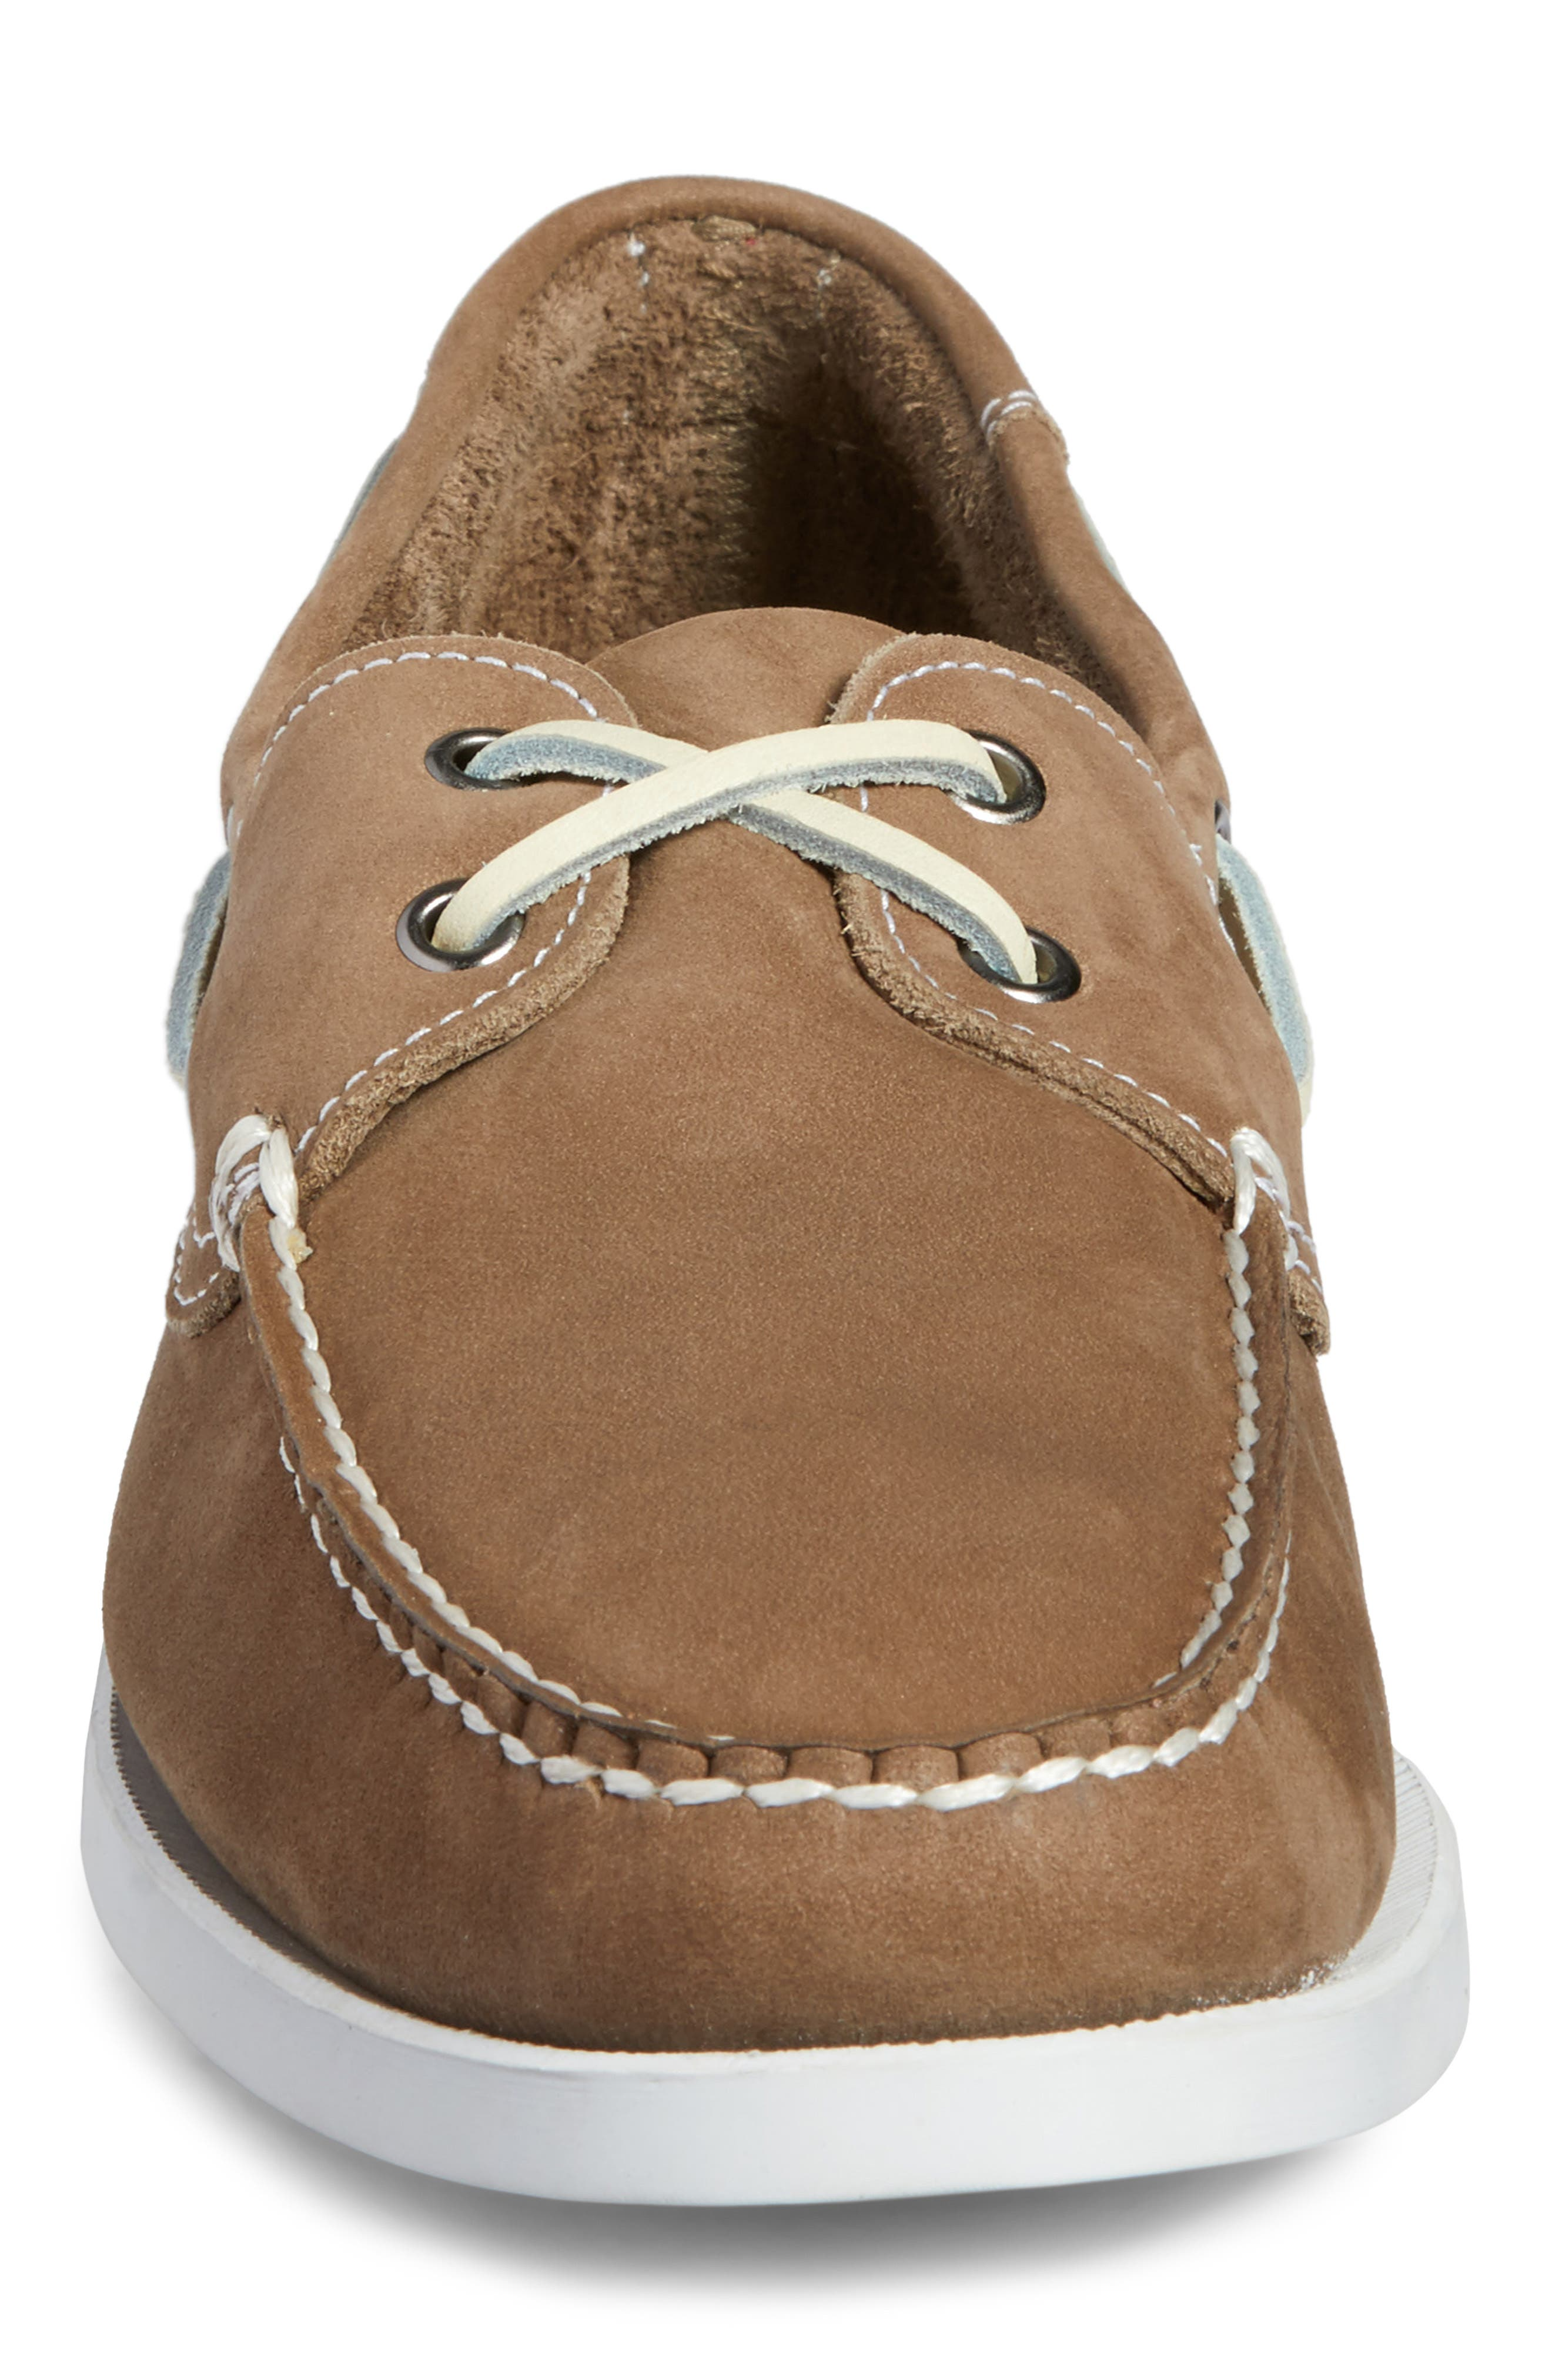 Pacific Boat Shoe,                             Alternate thumbnail 4, color,                             GREY NUBUCK